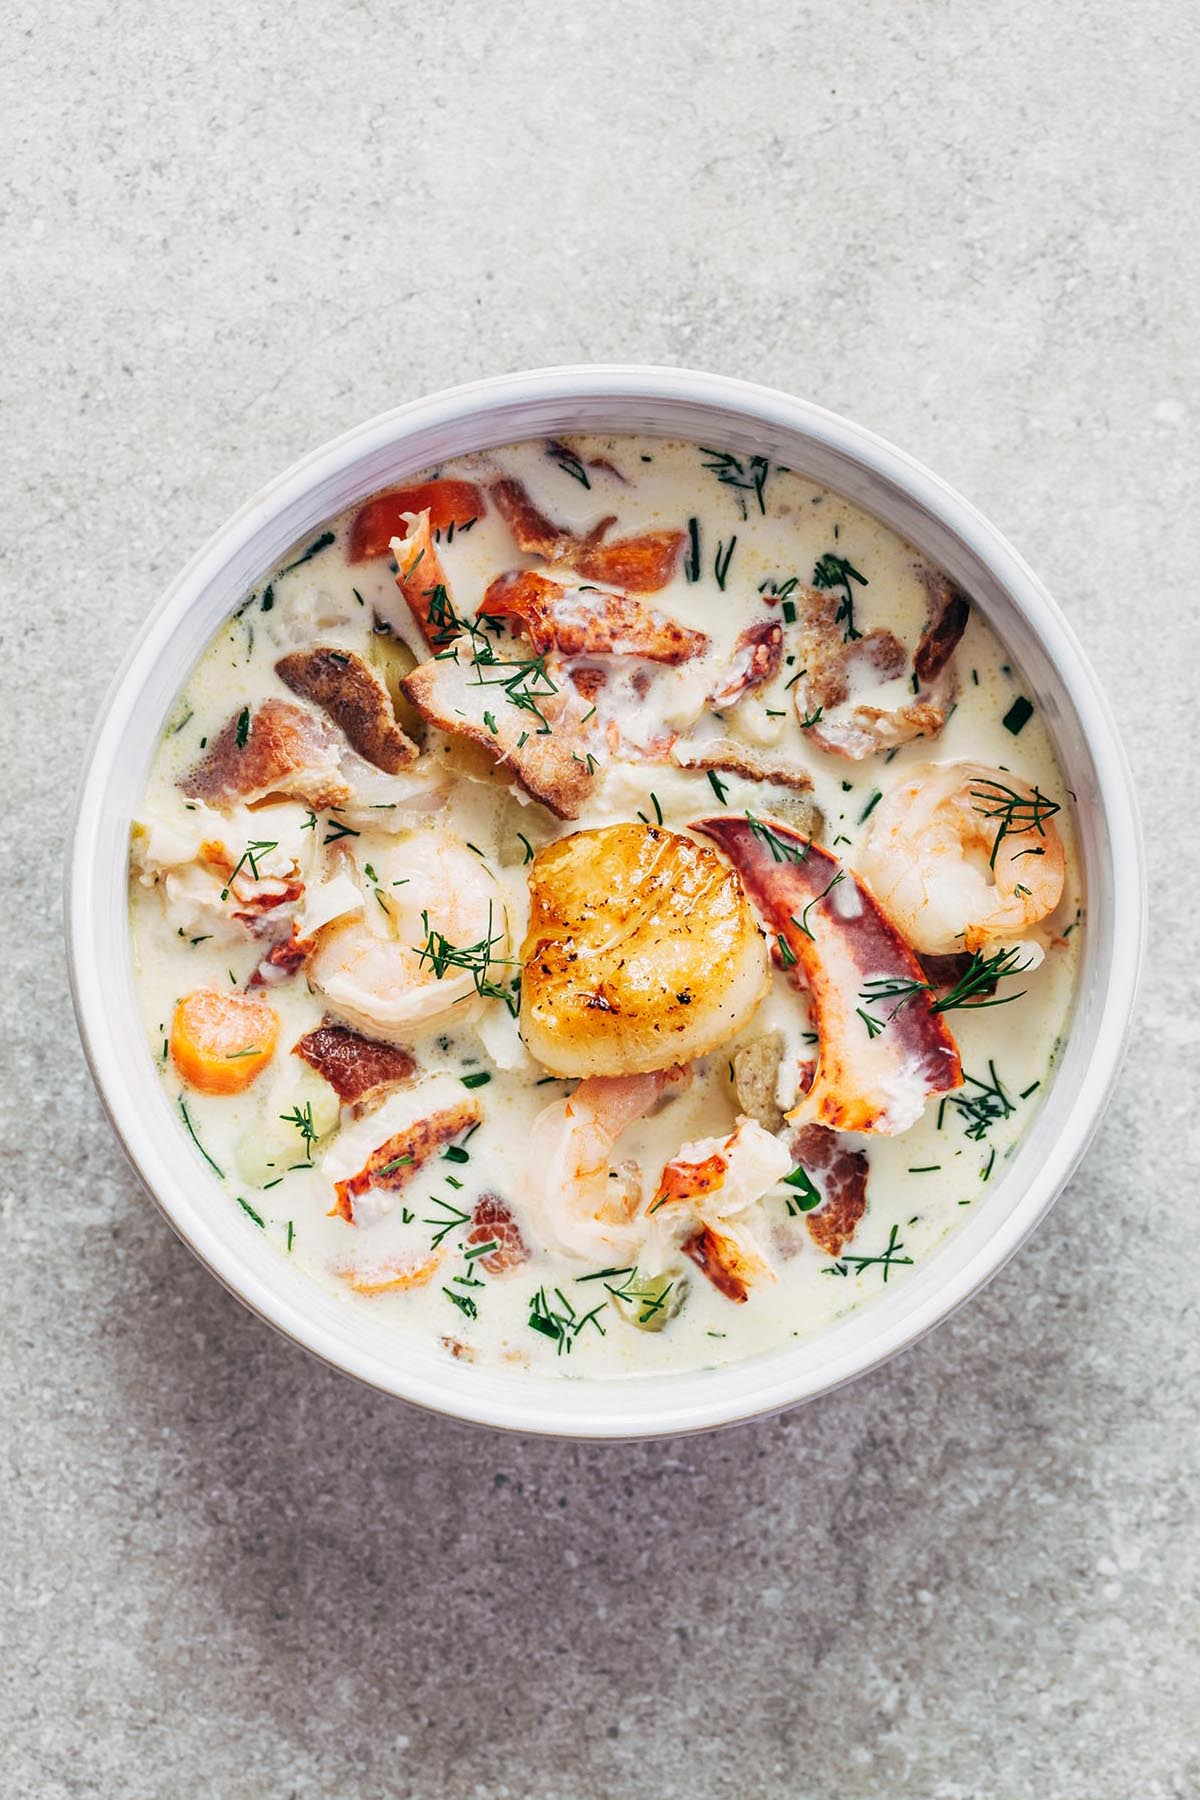 Overhead shot of a bowl of nova Scotia seafood chowder loaded with lobster, haddock, shrimp, potatoes, and bacon, with one golden pan-seared scallop on top.